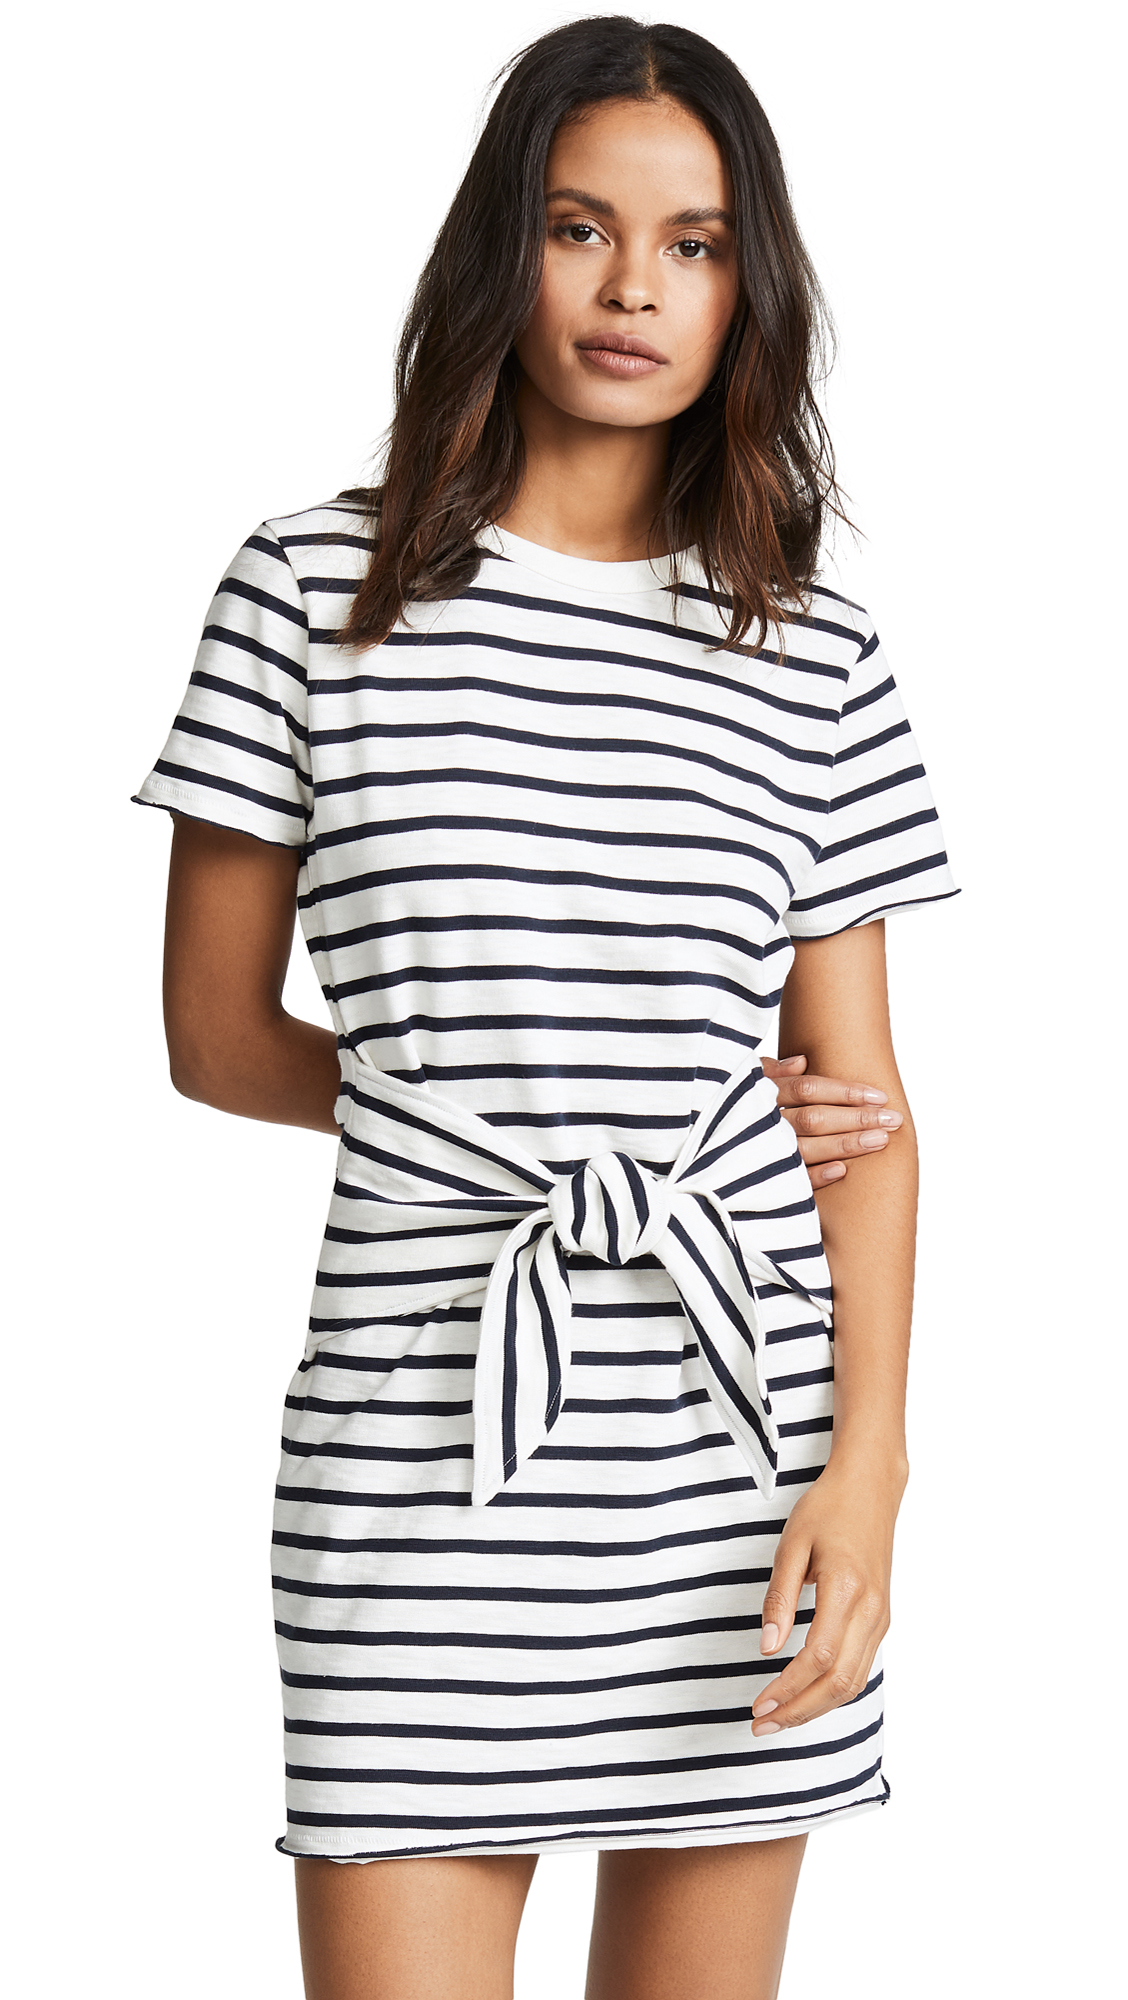 Rag & Bone/JEAN Halsey Tie Dress - White/Navy